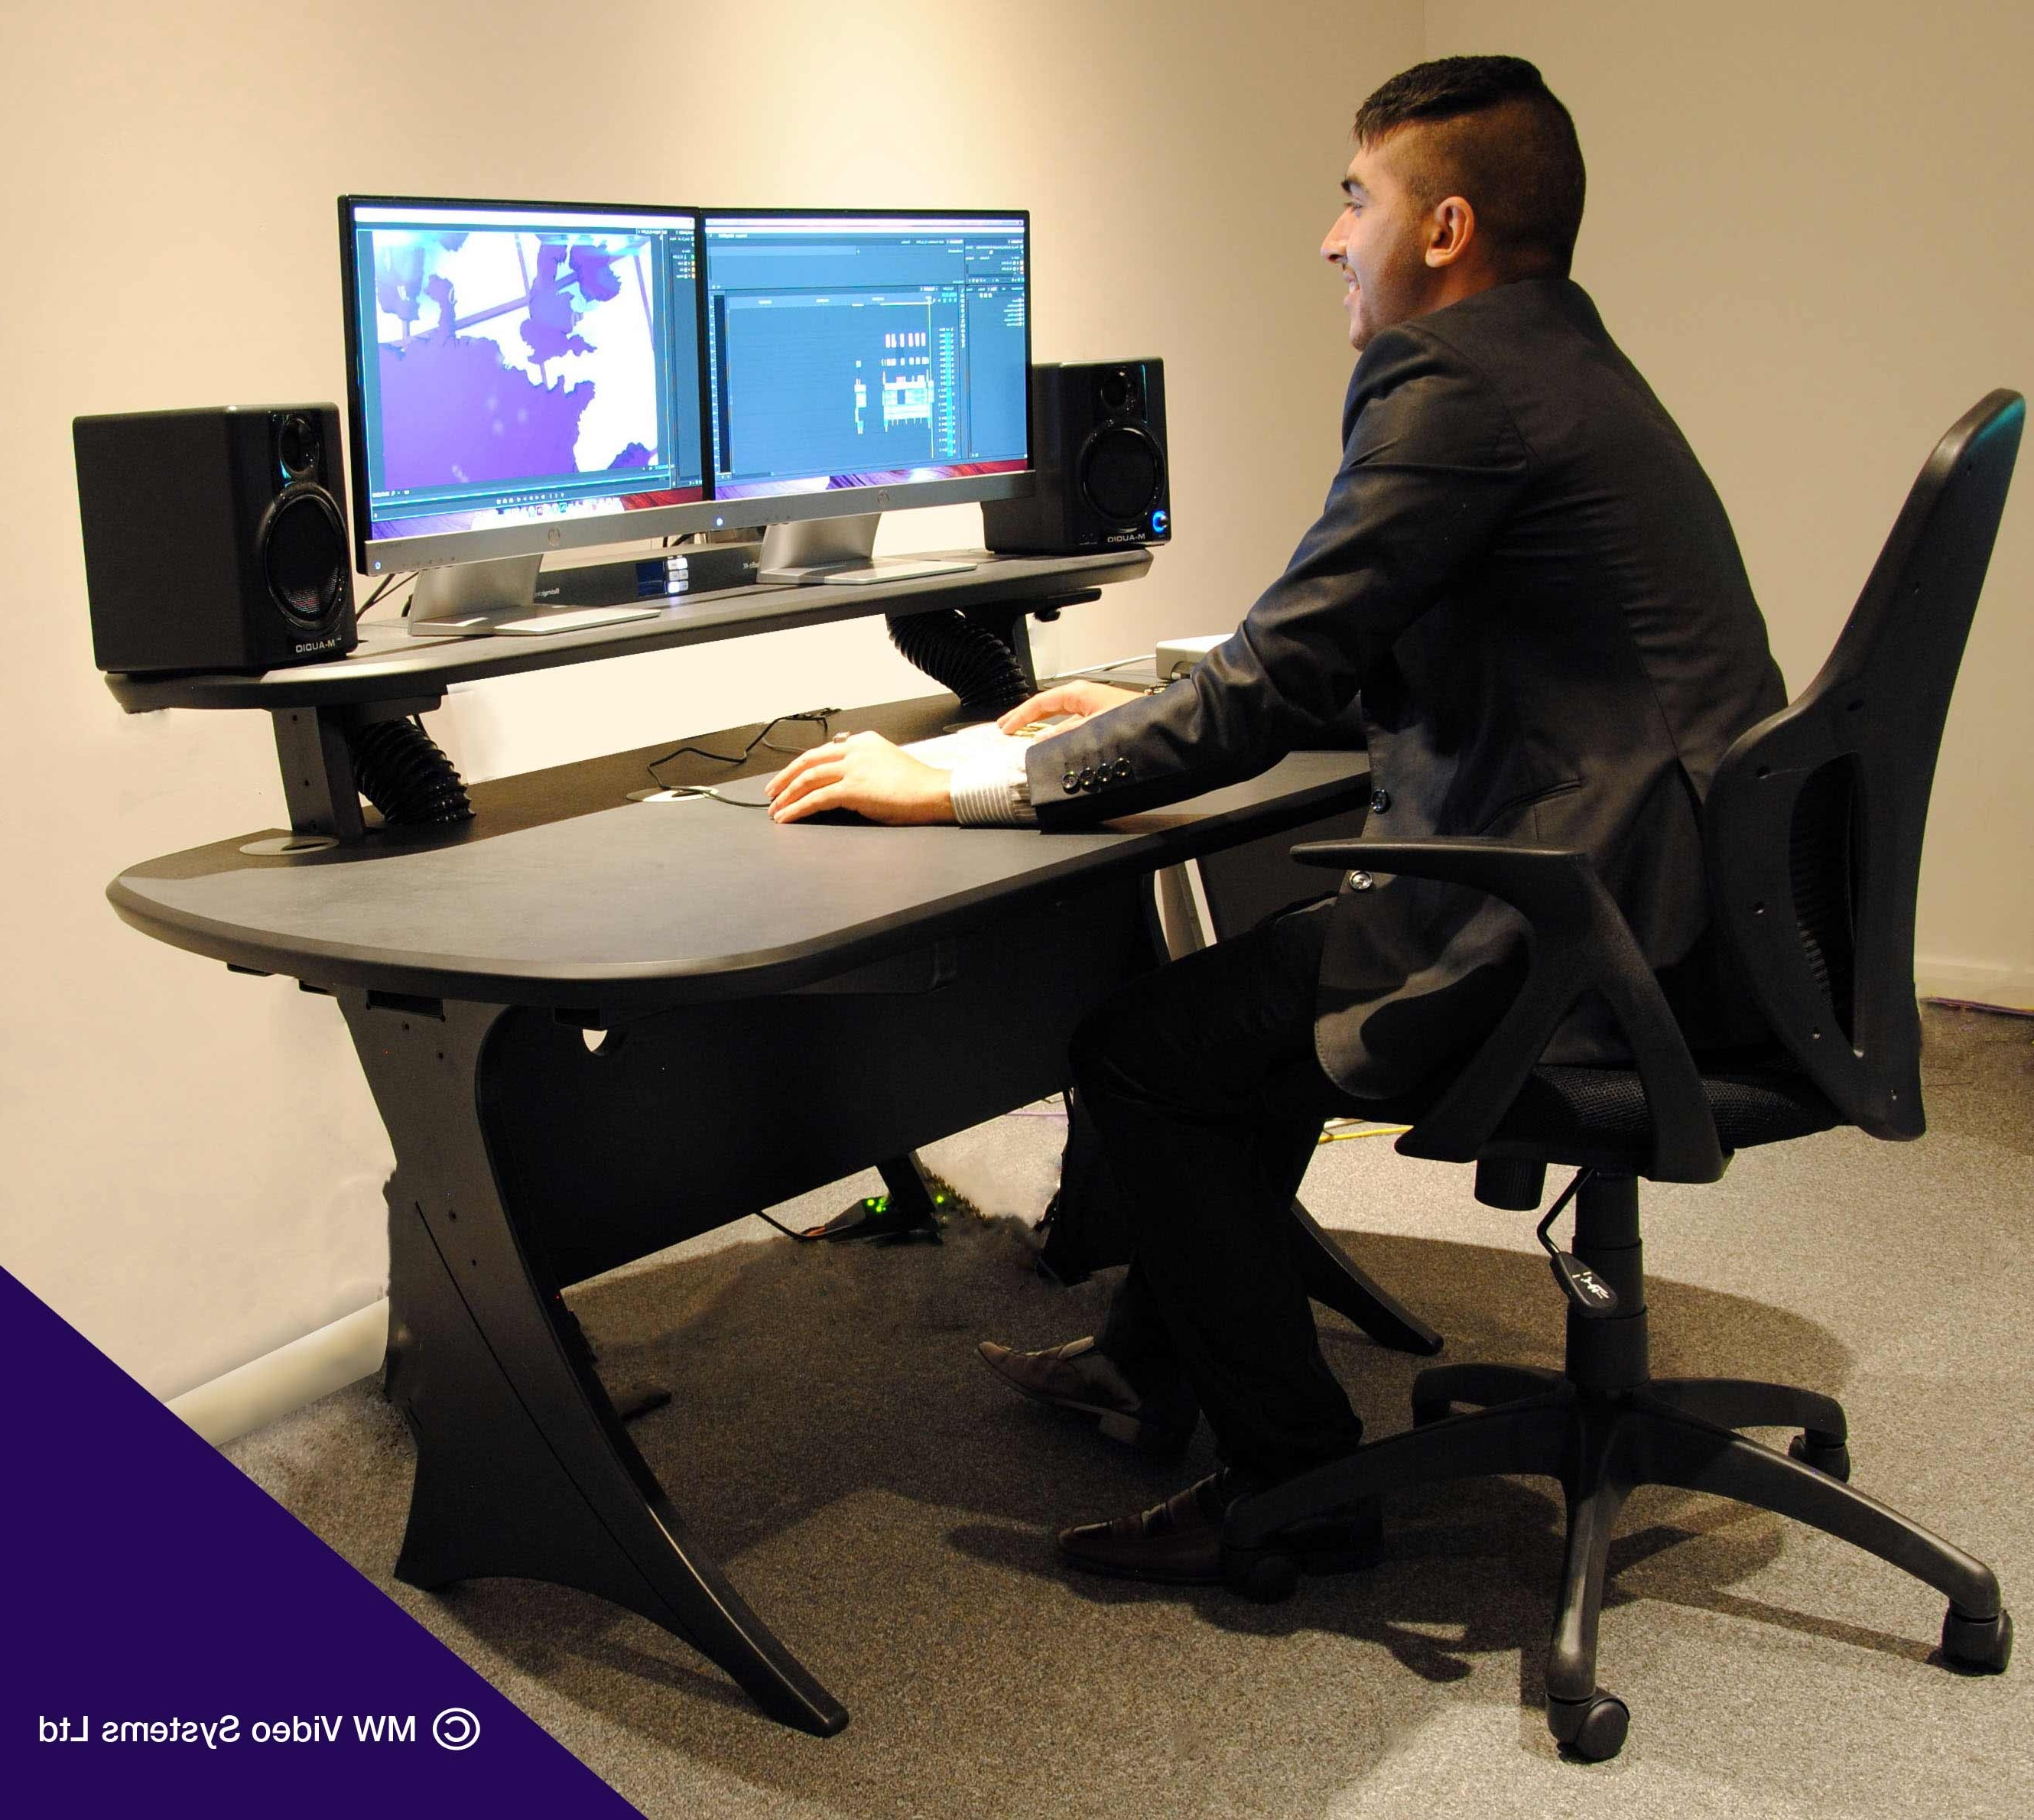 Computer Editing Desks In Best And Newest Editing Desk Assembly Video Now Available Mw Video Systems (View 3 of 20)